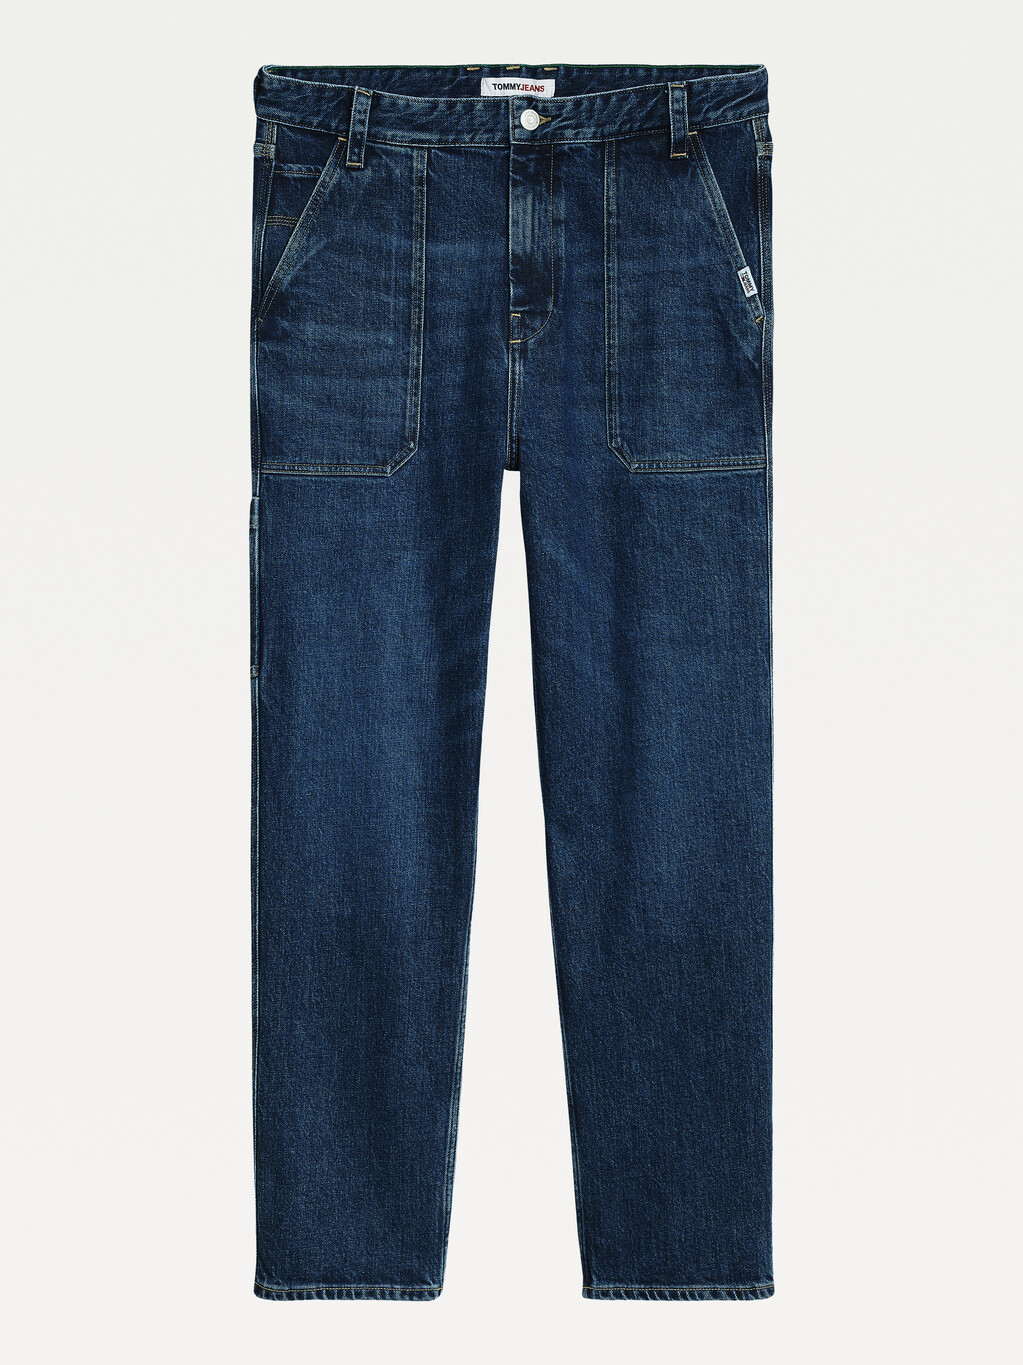 Skater Relaxed Worker Jeans